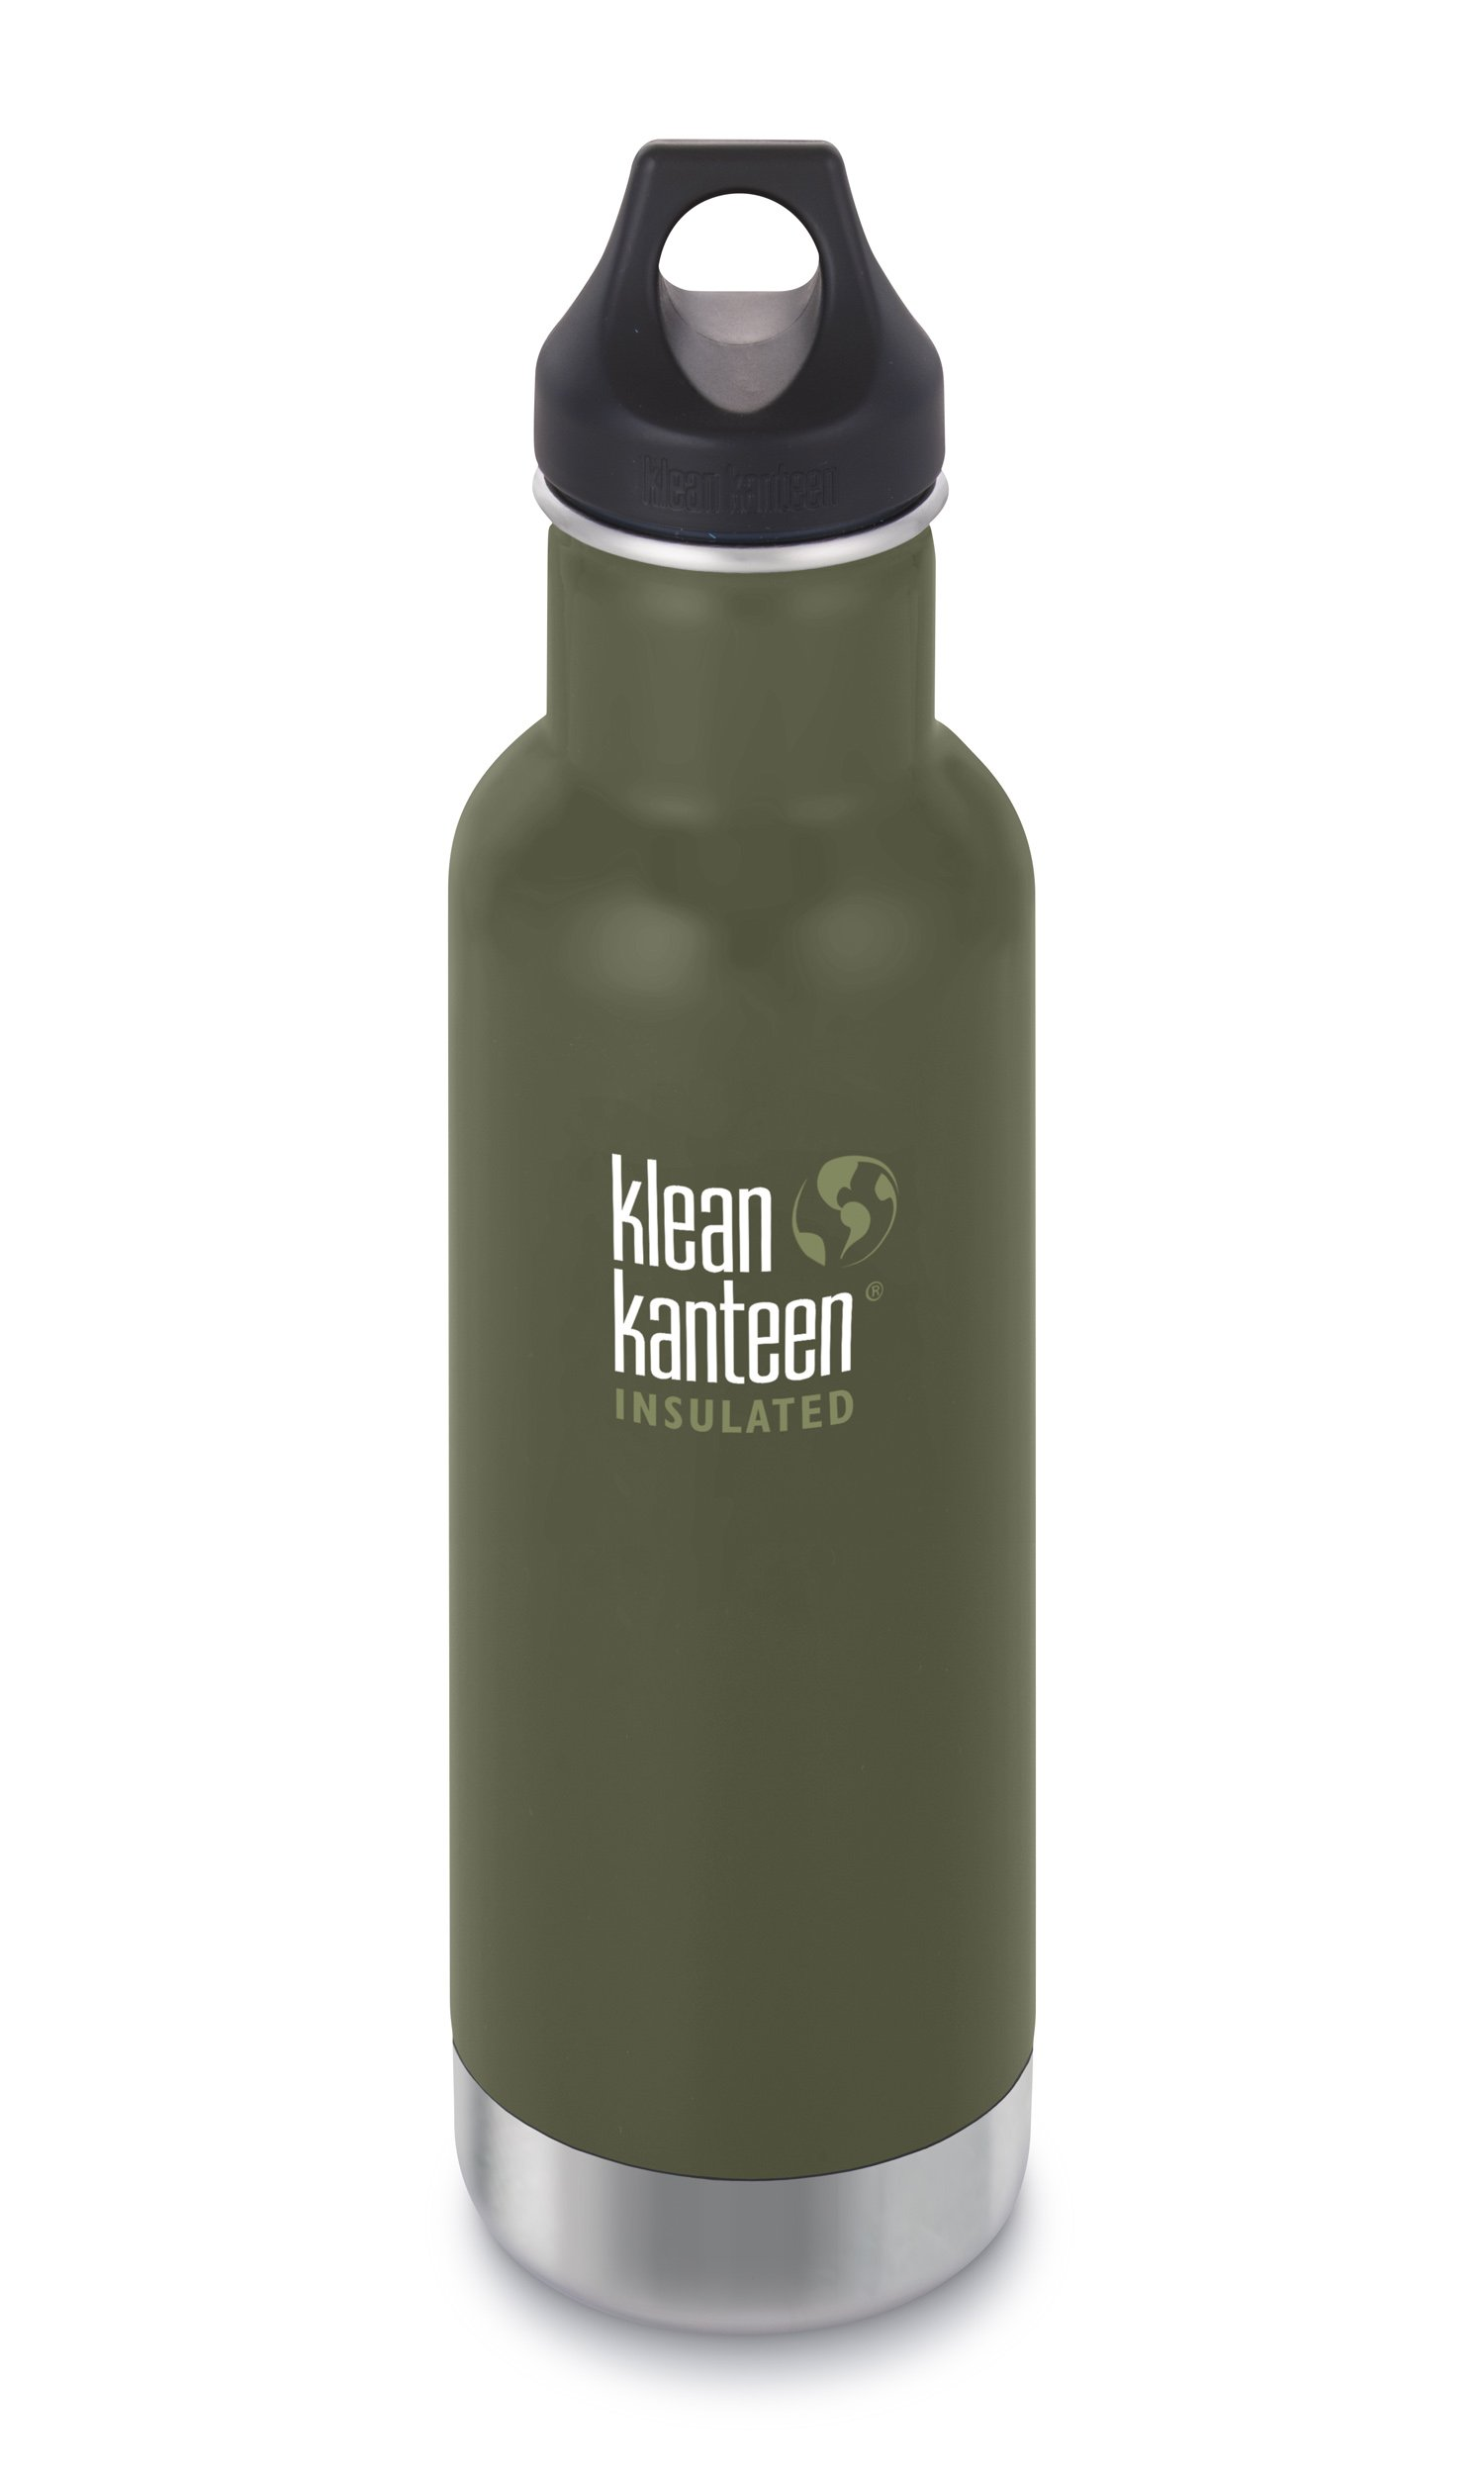 Klean Kanteen Classic Insulated Stainless Steel Water Bottle with Klean Coat and Leak Proof Loop Cap - 20oz - Fresh Pine